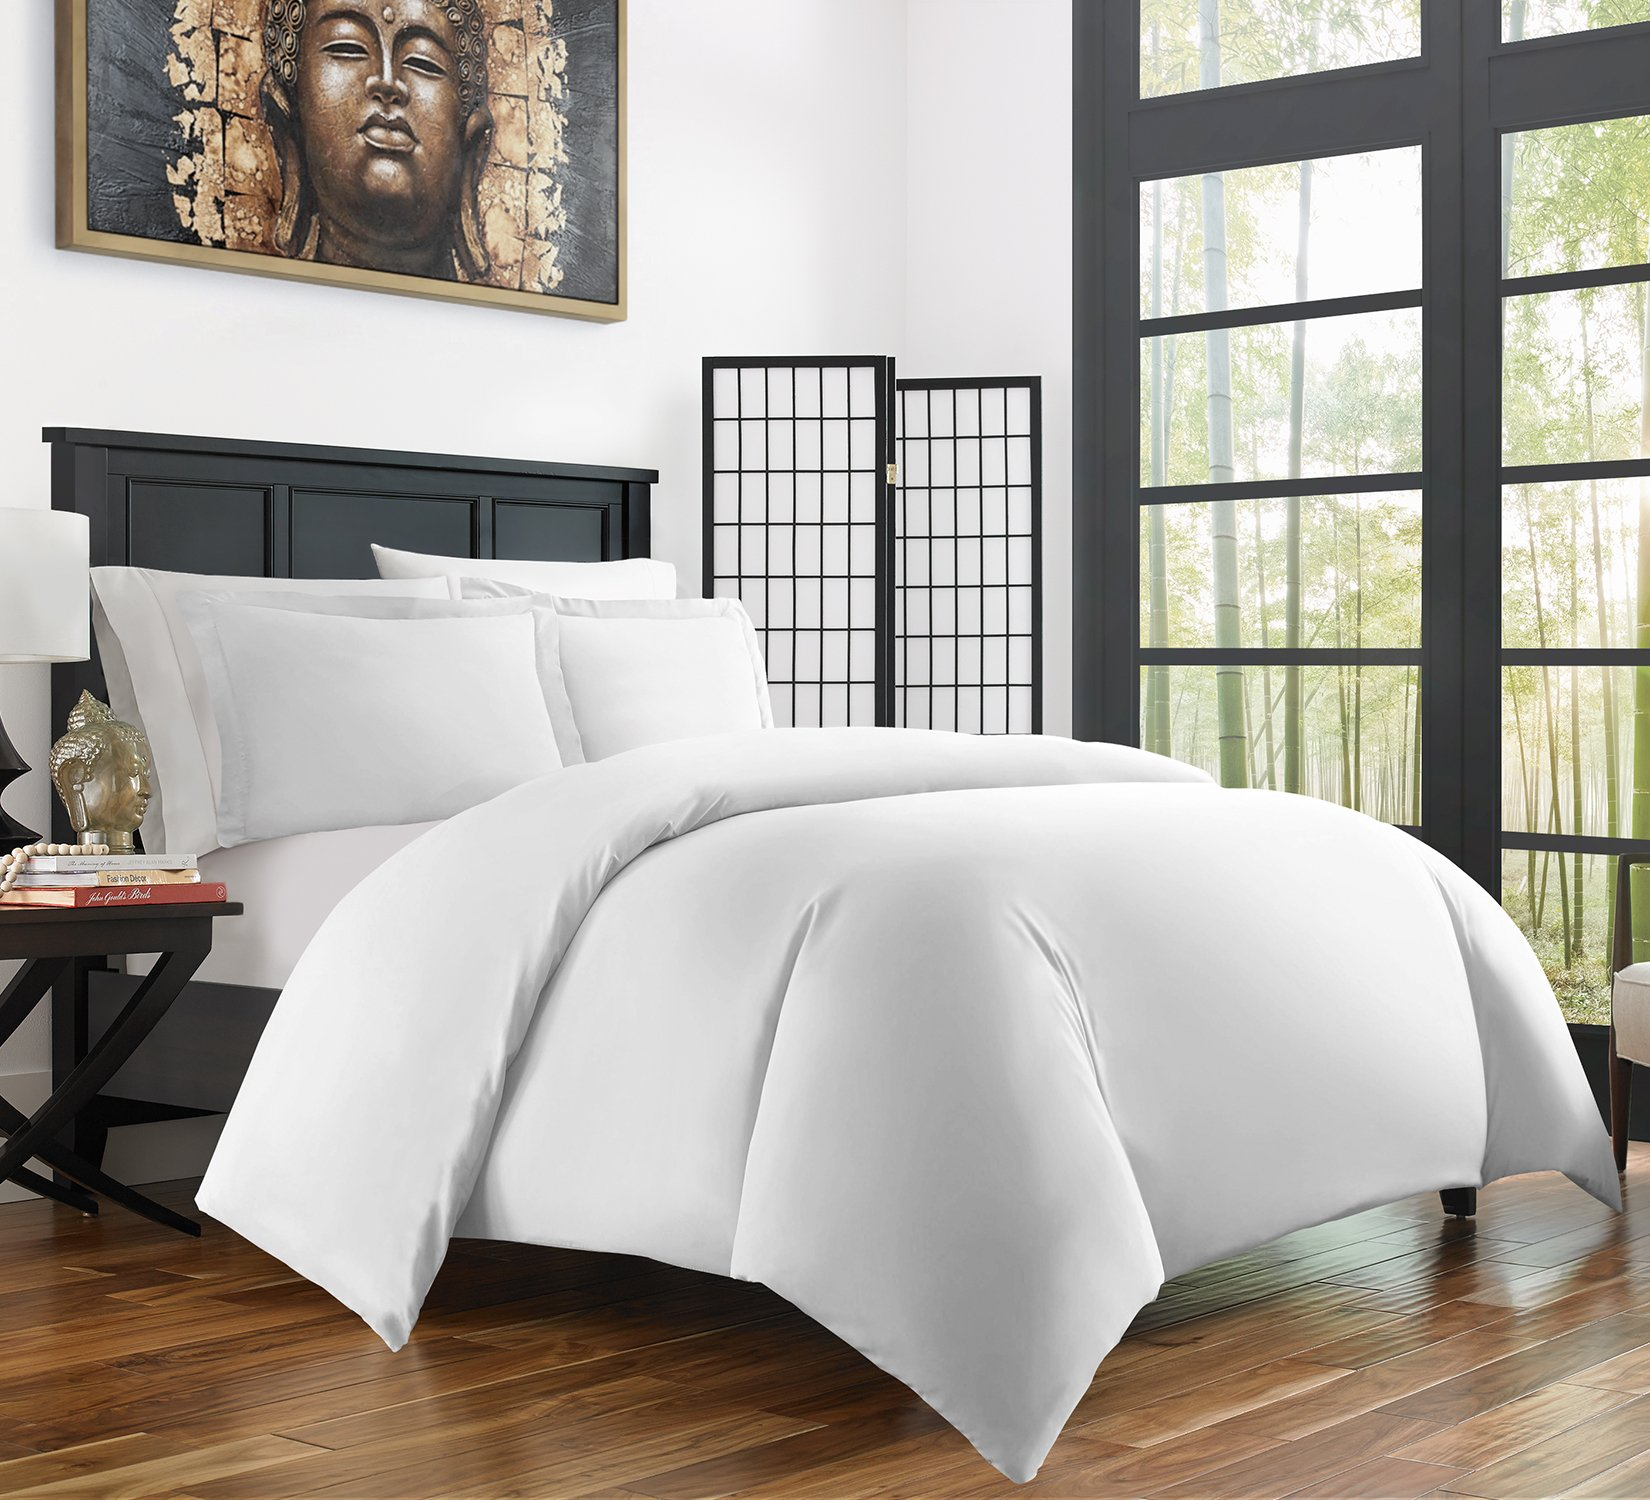 Zen Bamboo Ultra Soft 3-Piece Bamboo Derived Rayon Duvet Cover Set -Hypoallergenic and Wrinkle Resistant - Twin/Twin XL - White